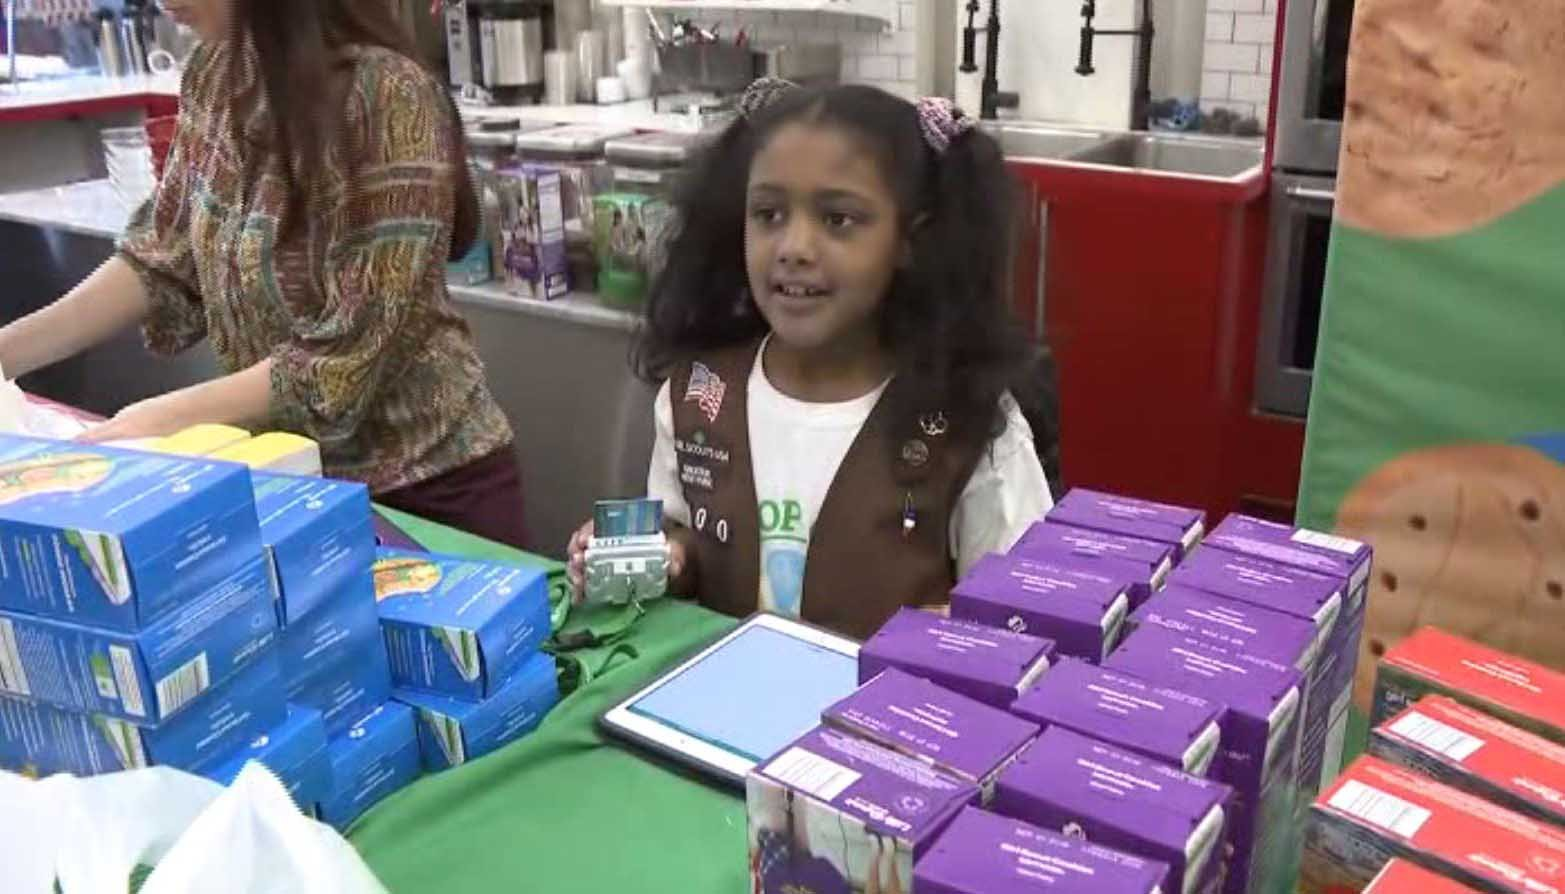 The girls of Troop 6000 in New York City have met, and even exceeded, their sales goal. (Source: WCBS/CNN)